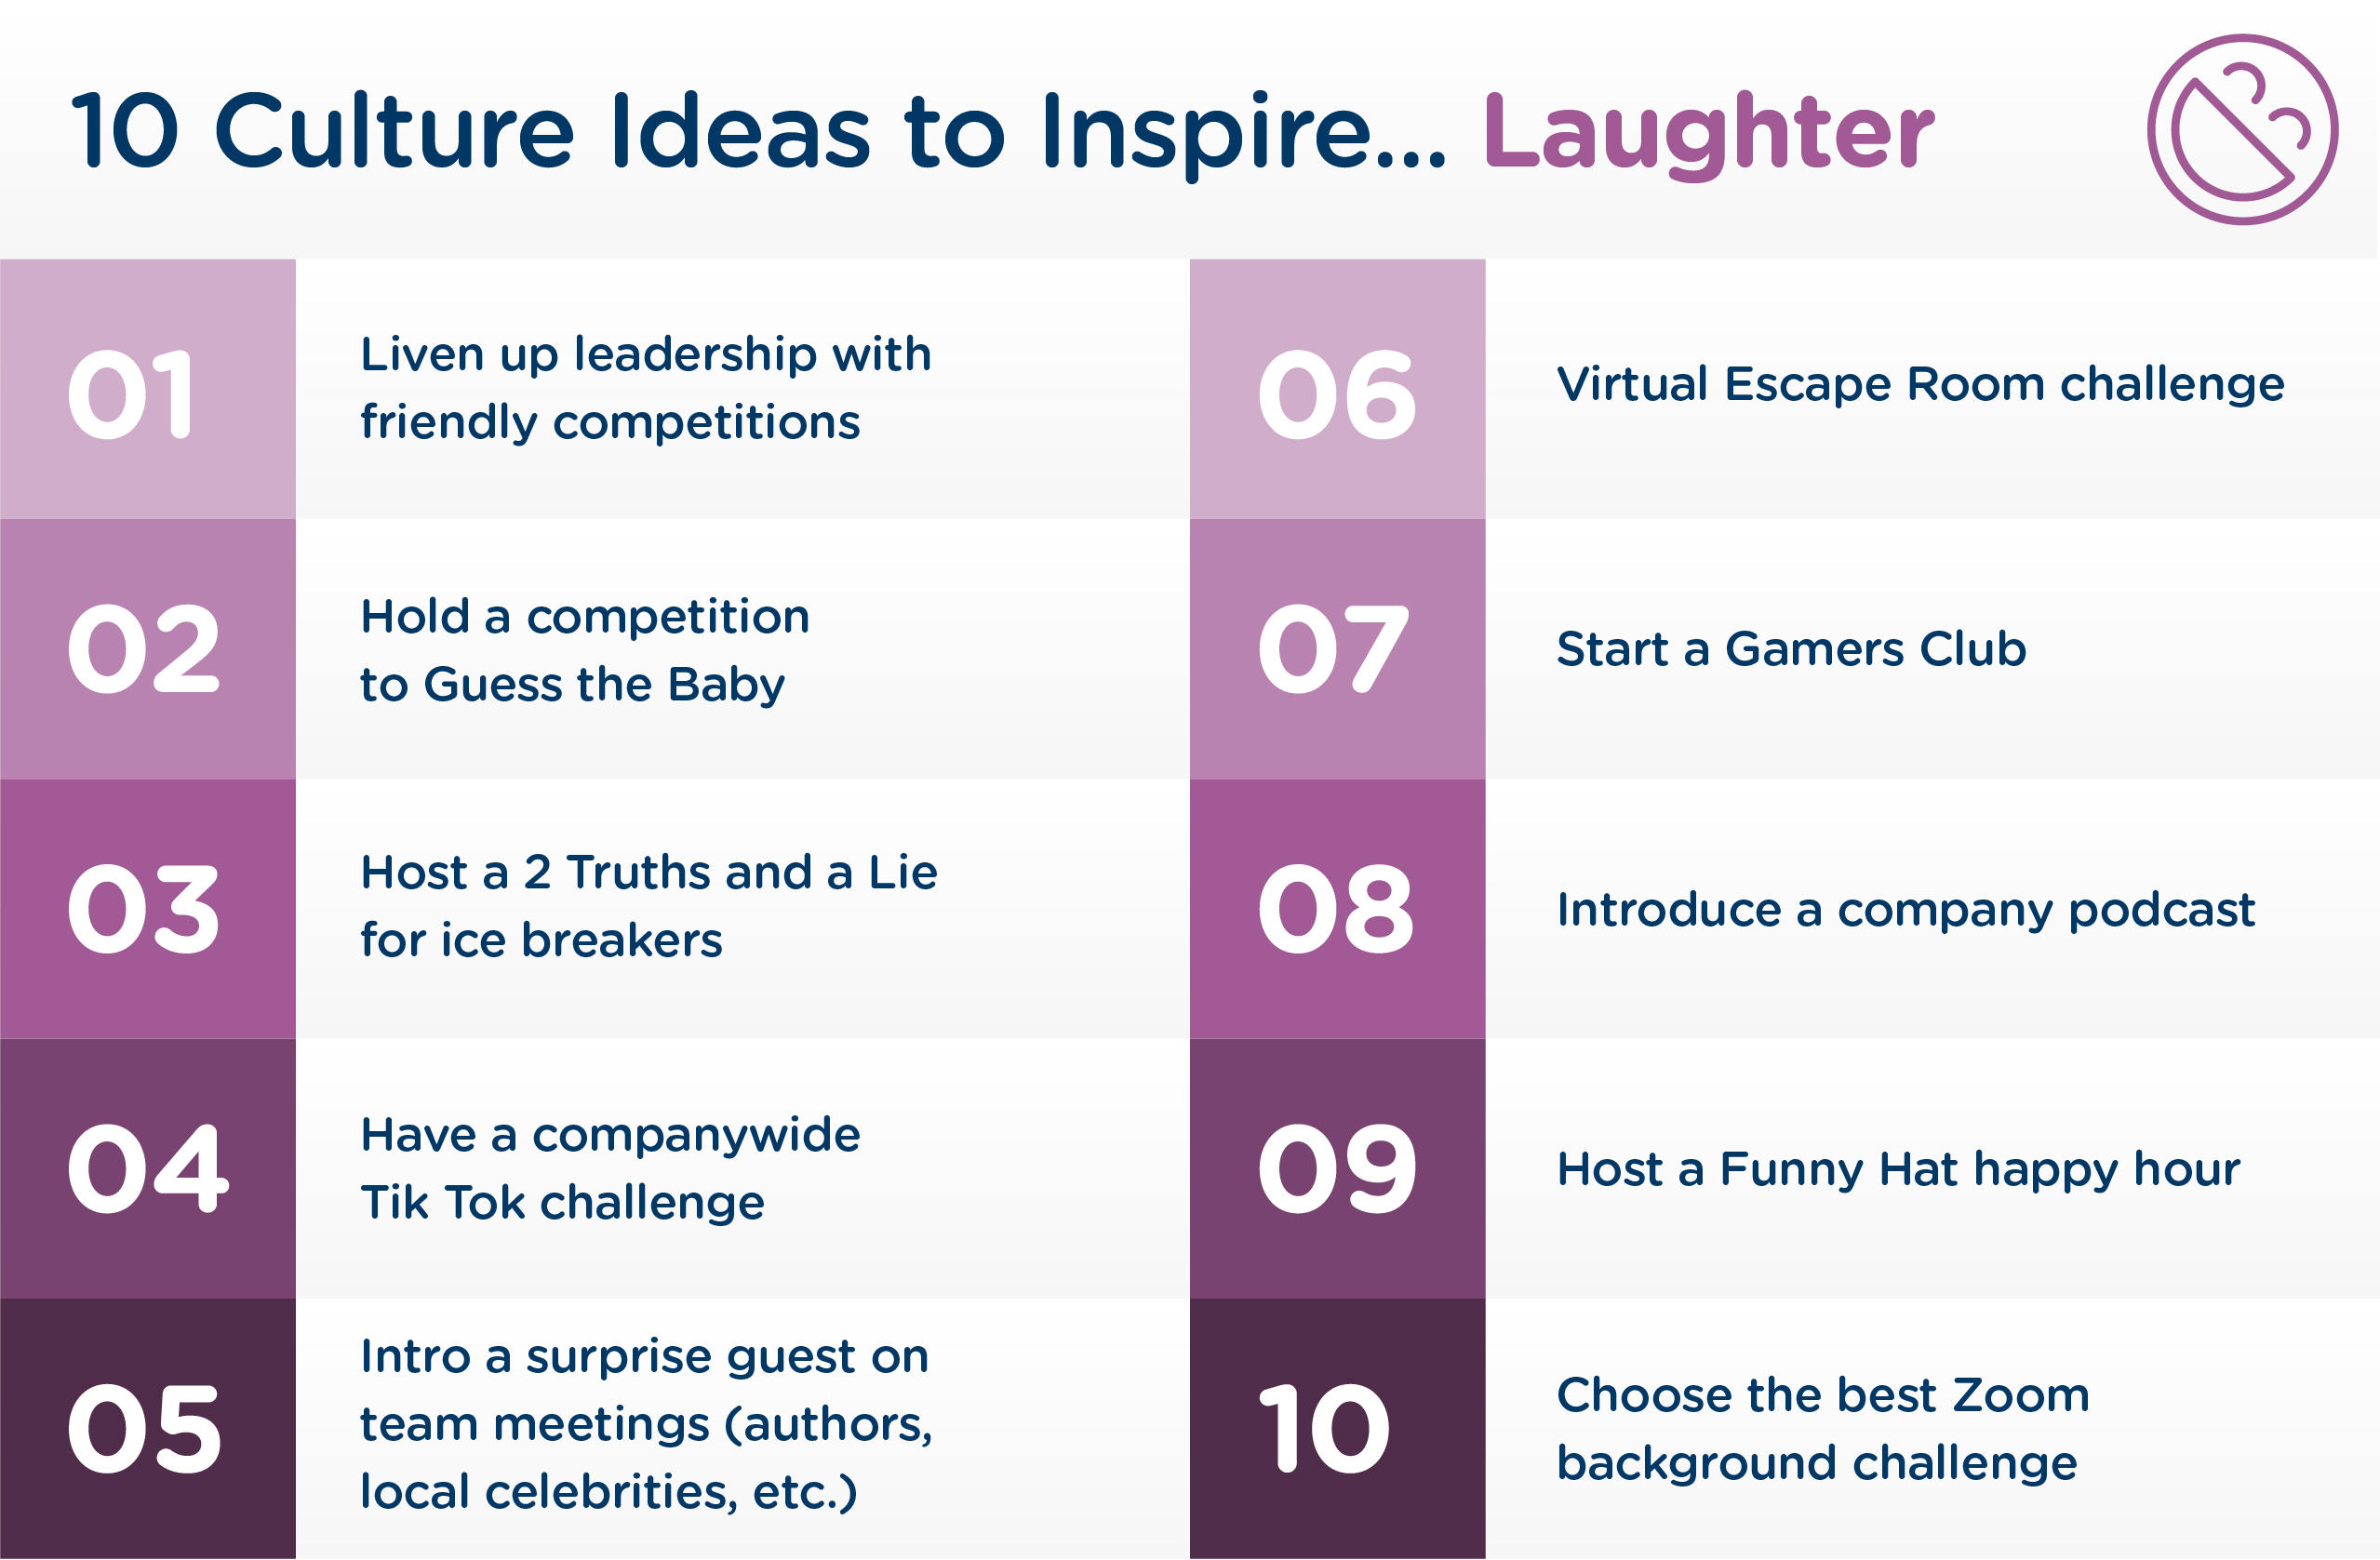 2020_10 ideas-Laughter